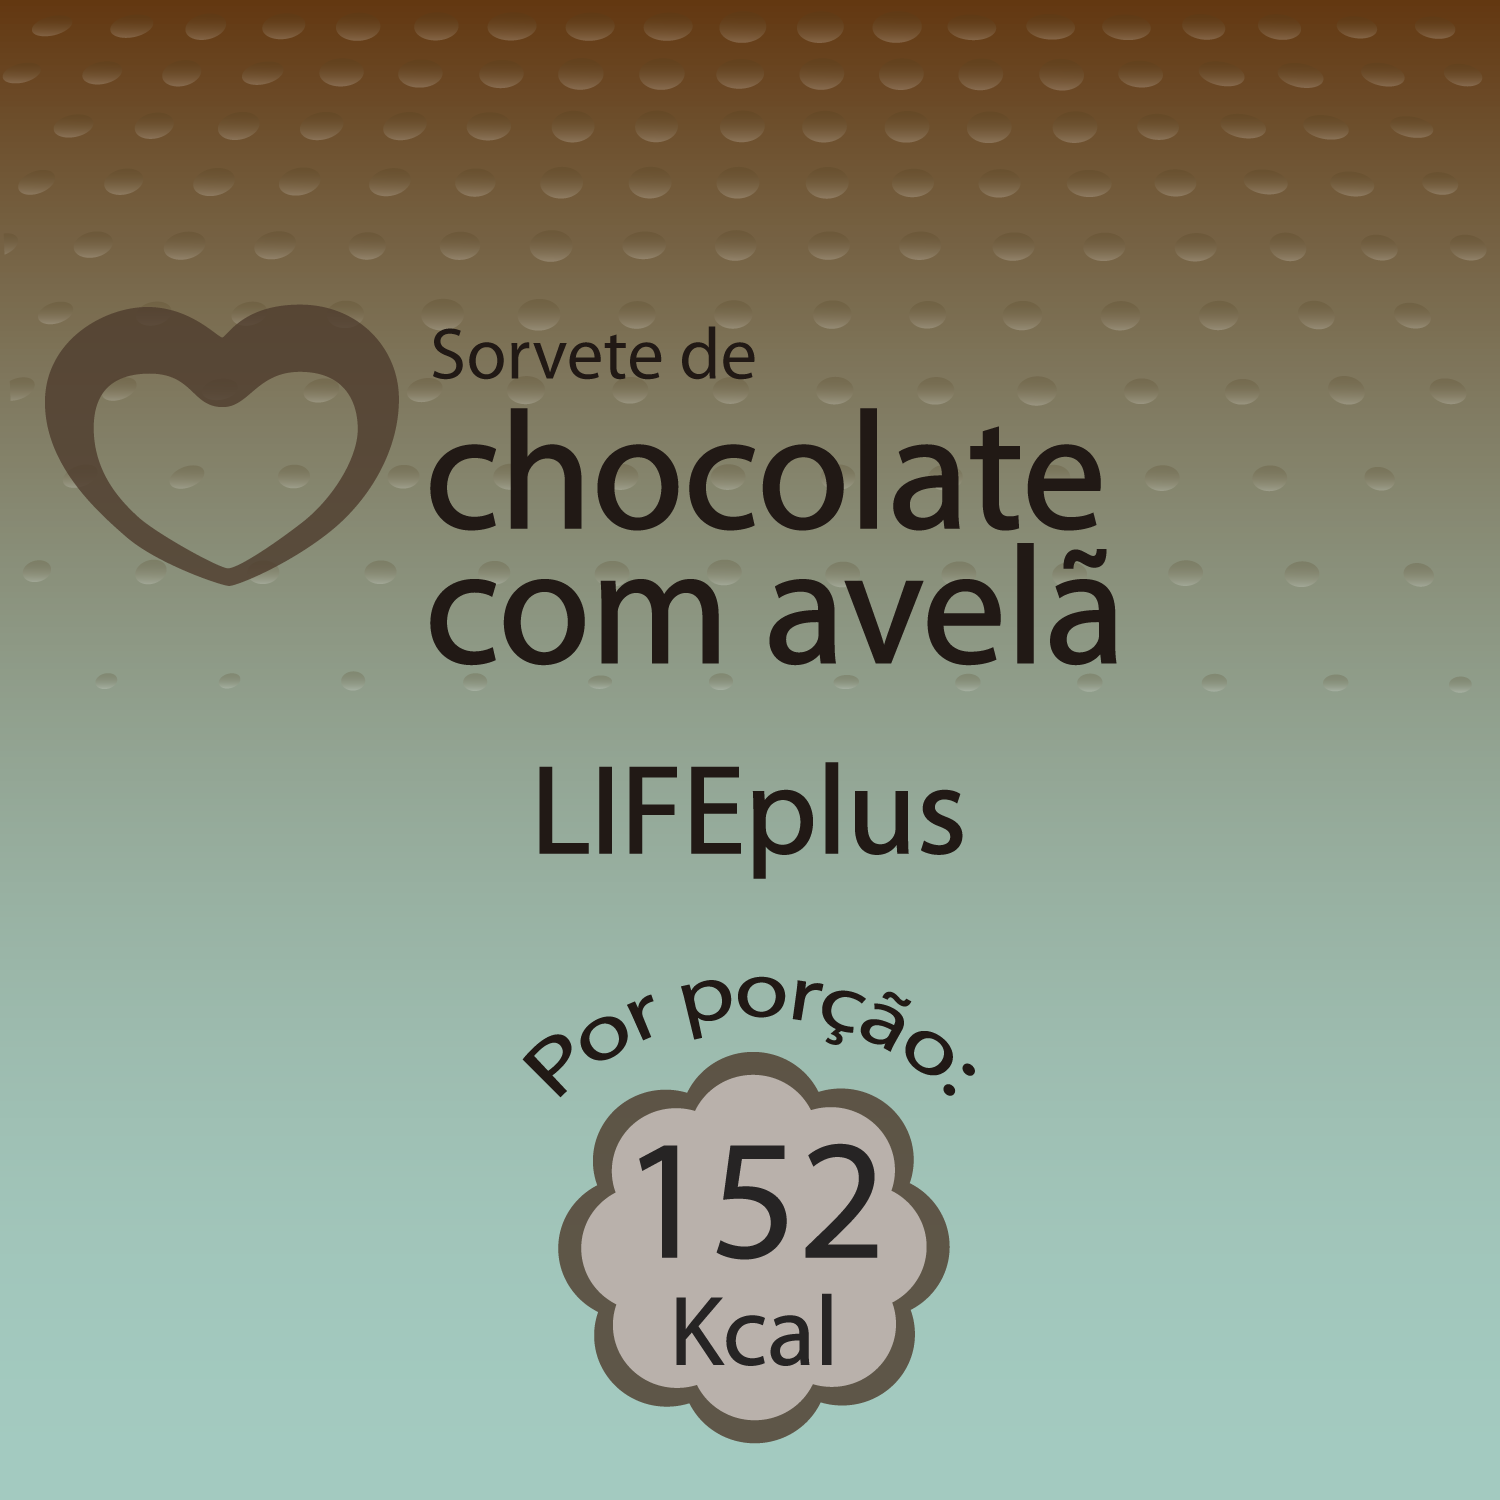 120ml chocolate com avela lifeplus